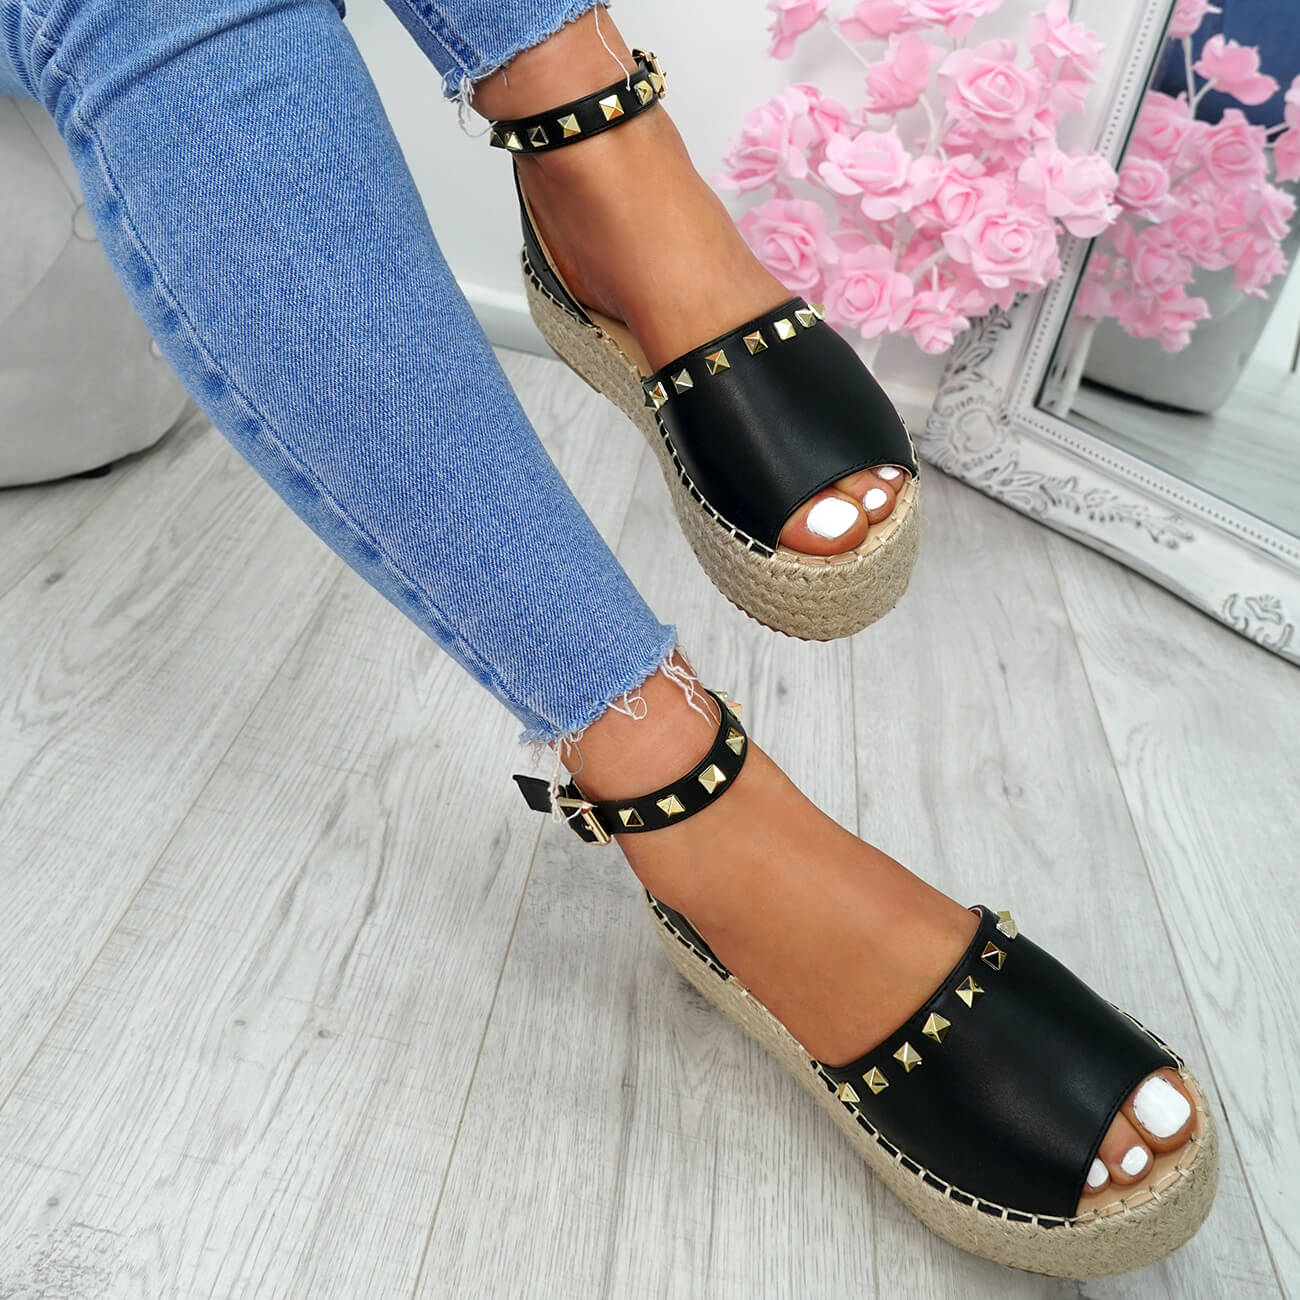 WOMENS-LADIES-ROCK-STUDS-ESPADRILLE-FLATFORM-PLATFORM-SANDALS-CASUAL-SHOES-SIZE thumbnail 7